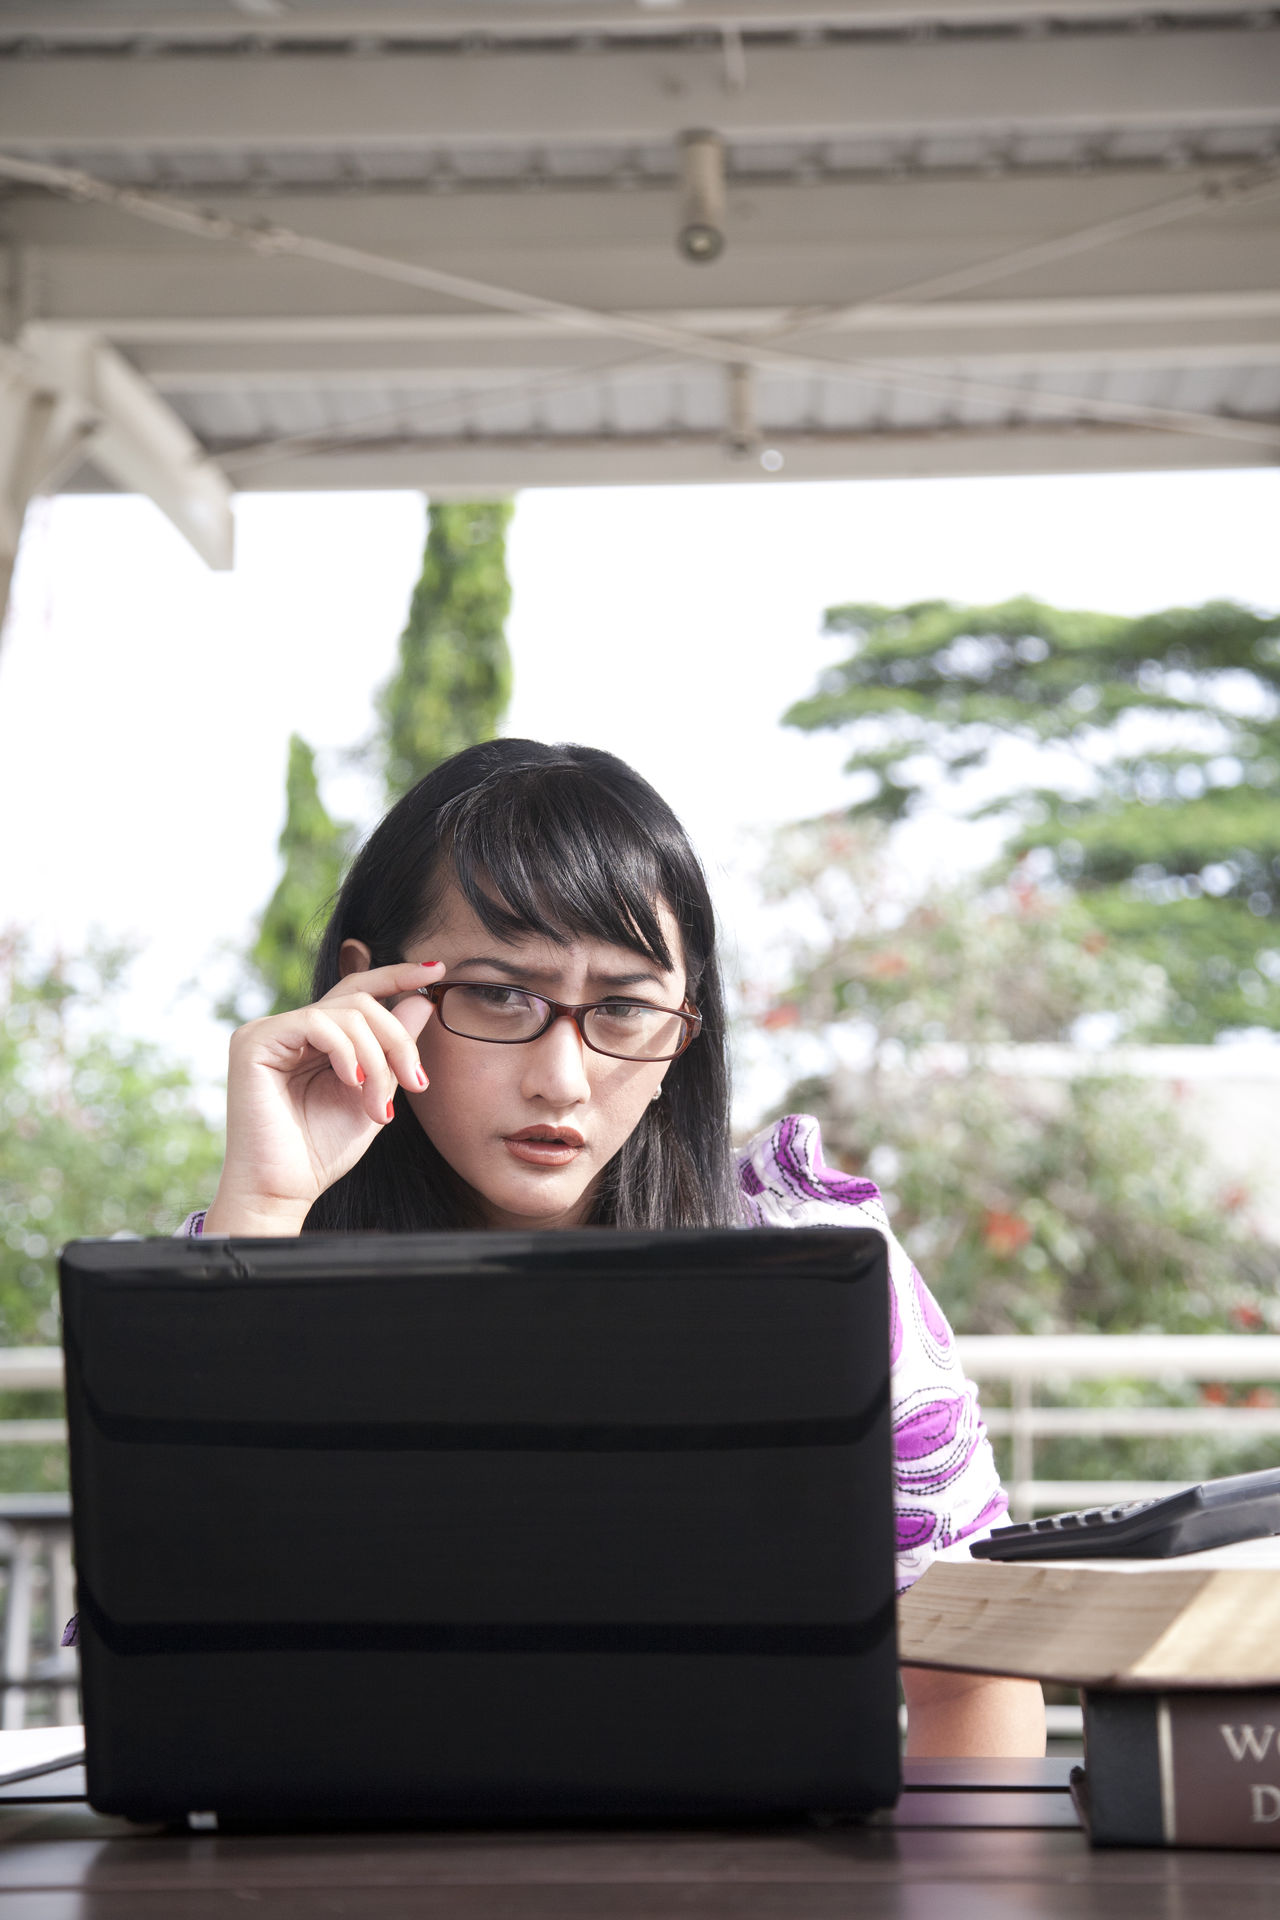 Adult Business Business Finance And Industry Communication Day E-learning Eyeglasses  Front View Indoors  Learning One Person One Woman Only One Young Woman Only Only Women People Sitting Student Table Technology University Student Using Laptop Wireless Technology Women Working Young Adult